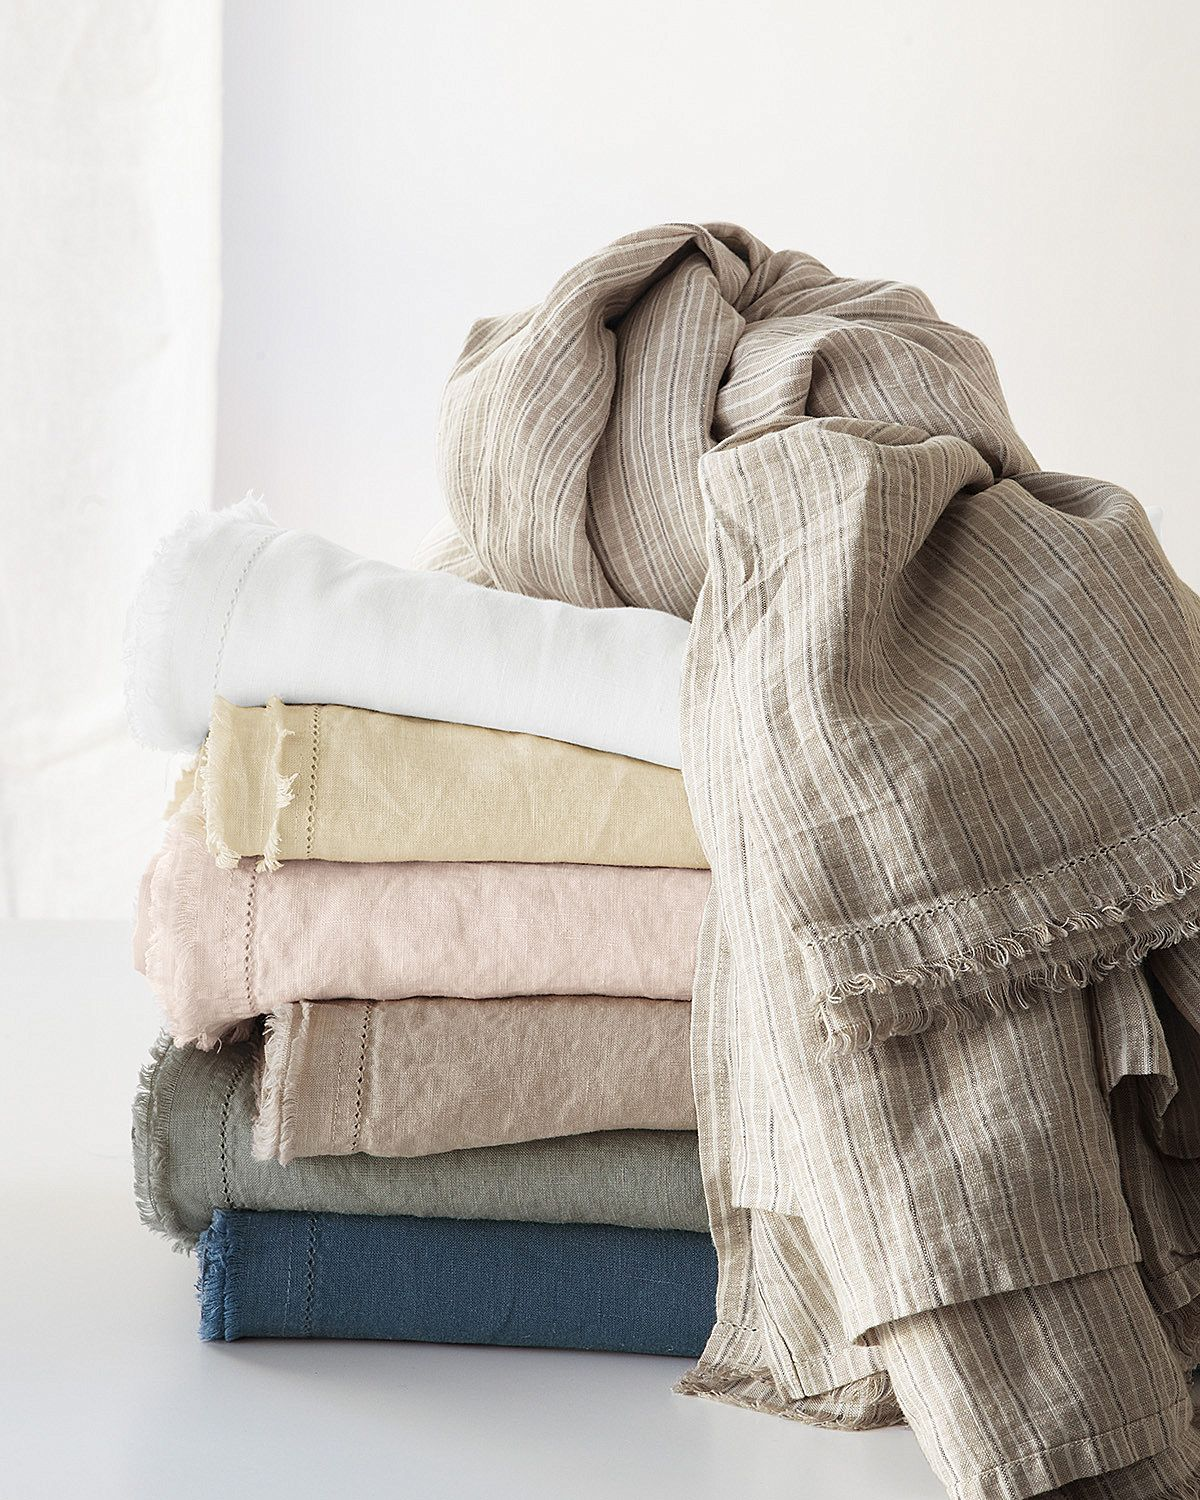 Eileen fisher seasonless silk comforter - 78 Best Images About Decor On Pinterest Quilt Linens And Home Collections